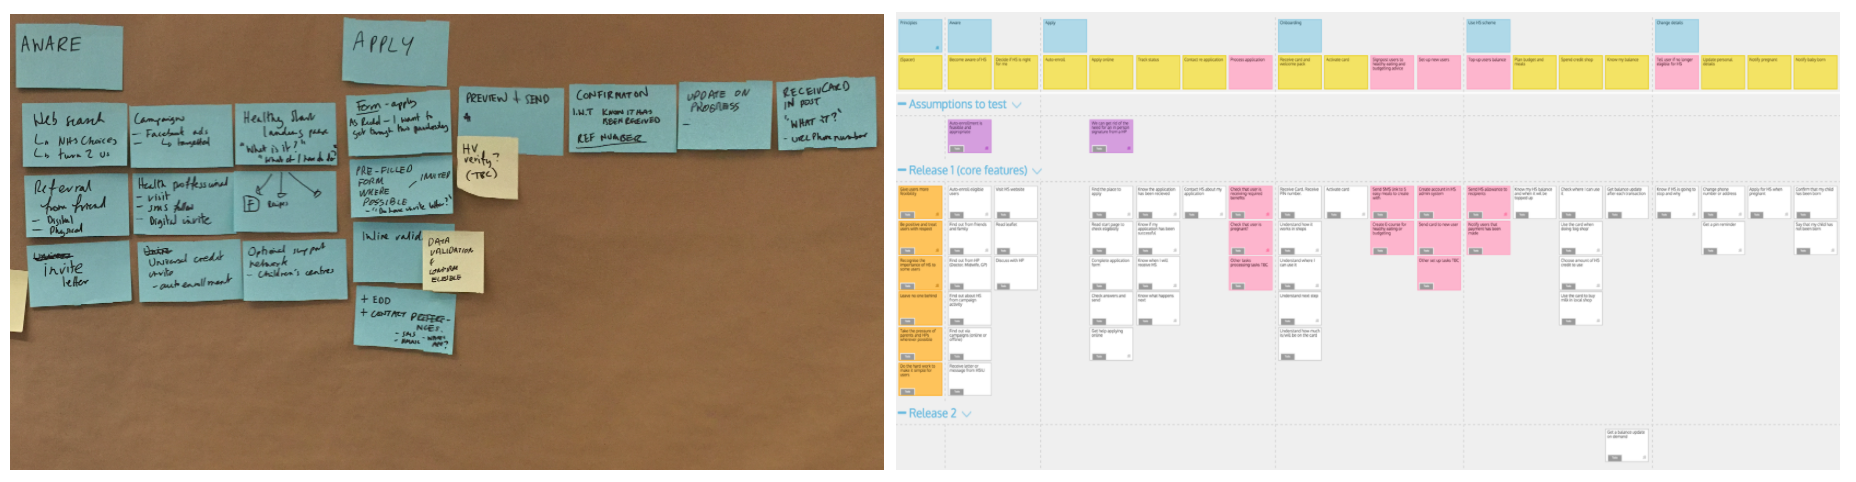 The User Story Map shows user stories at each step in the new envisaged journey from Apply to Use to Leave, giving the team a sense of scope. We mapped it out in a workshop (left) then created a more detailed digital version (right).